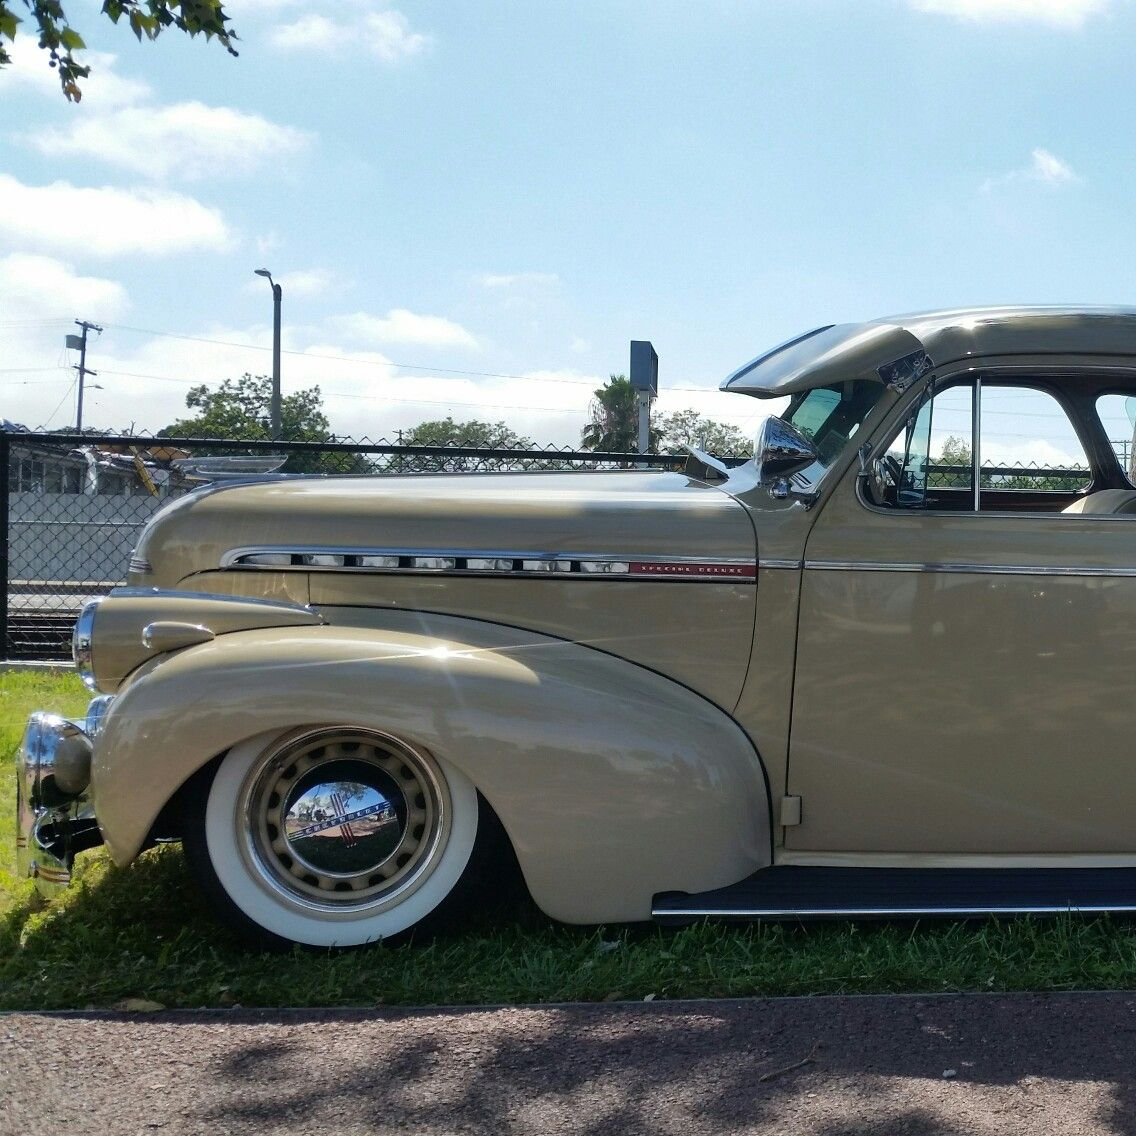 Bagged 1940 Chevy Bomb Lowrider Cars Chevy Classic Cars